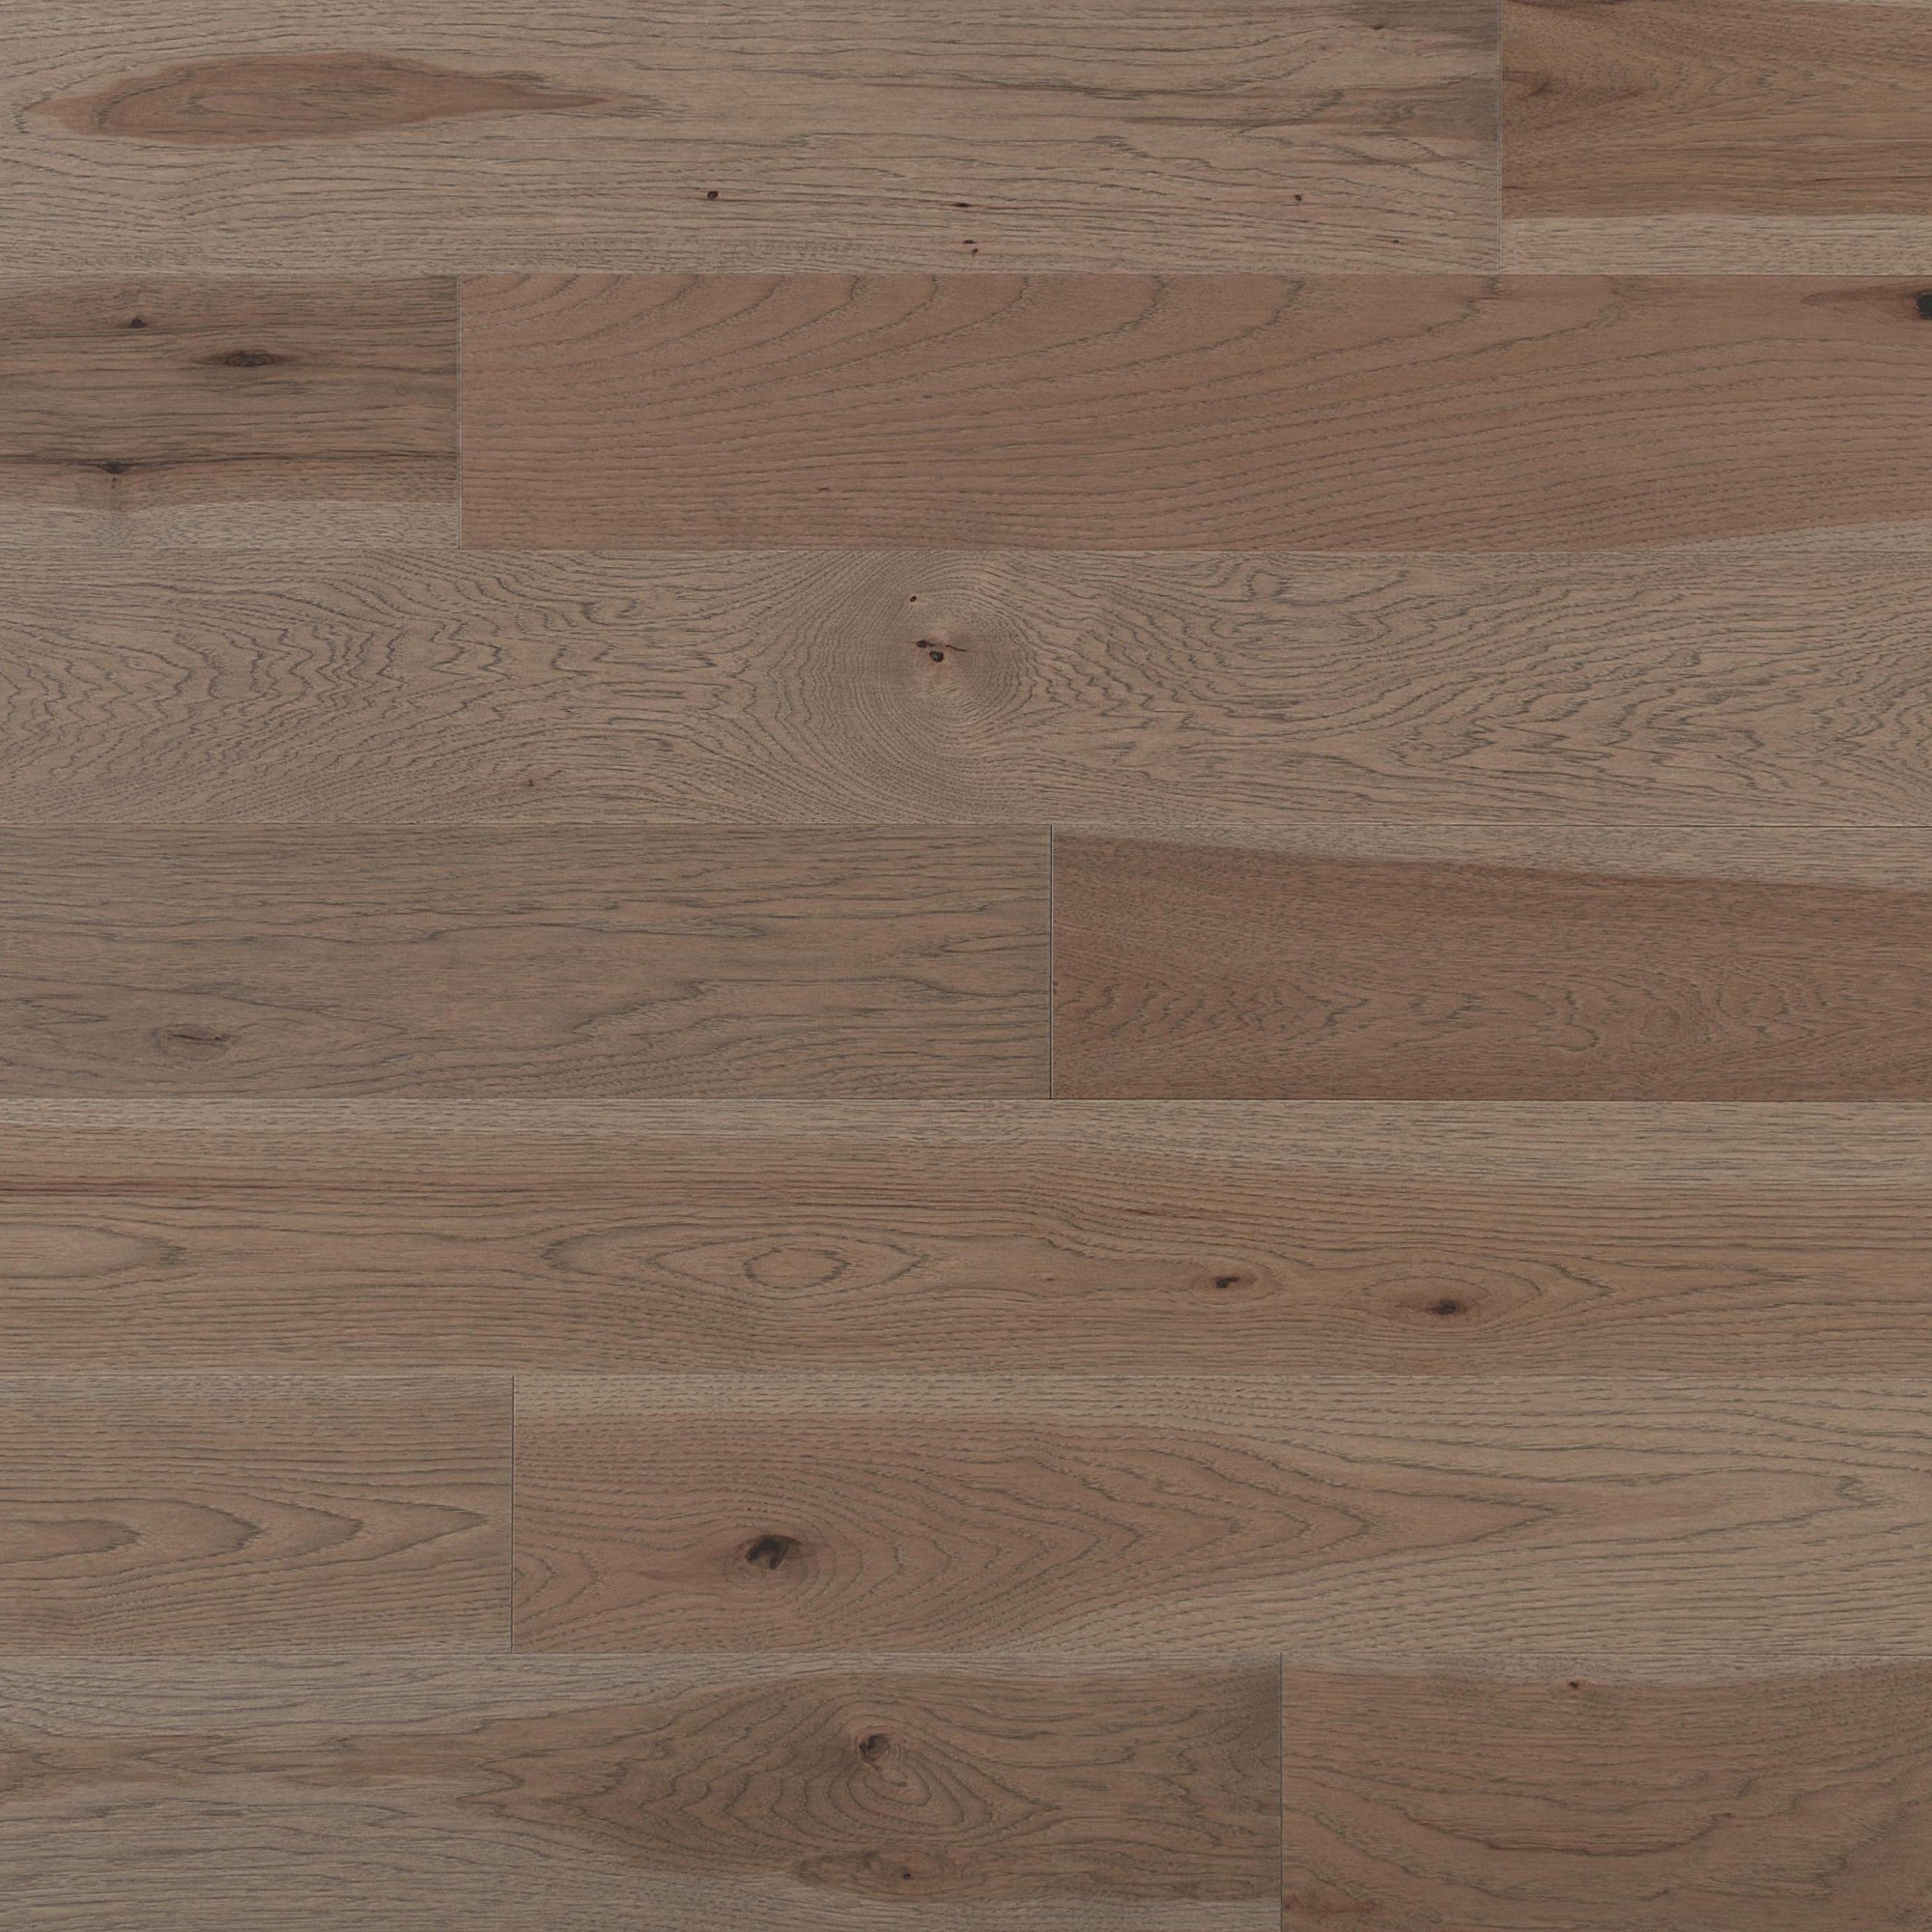 Hickory Greystone Character Smooth - Floor image